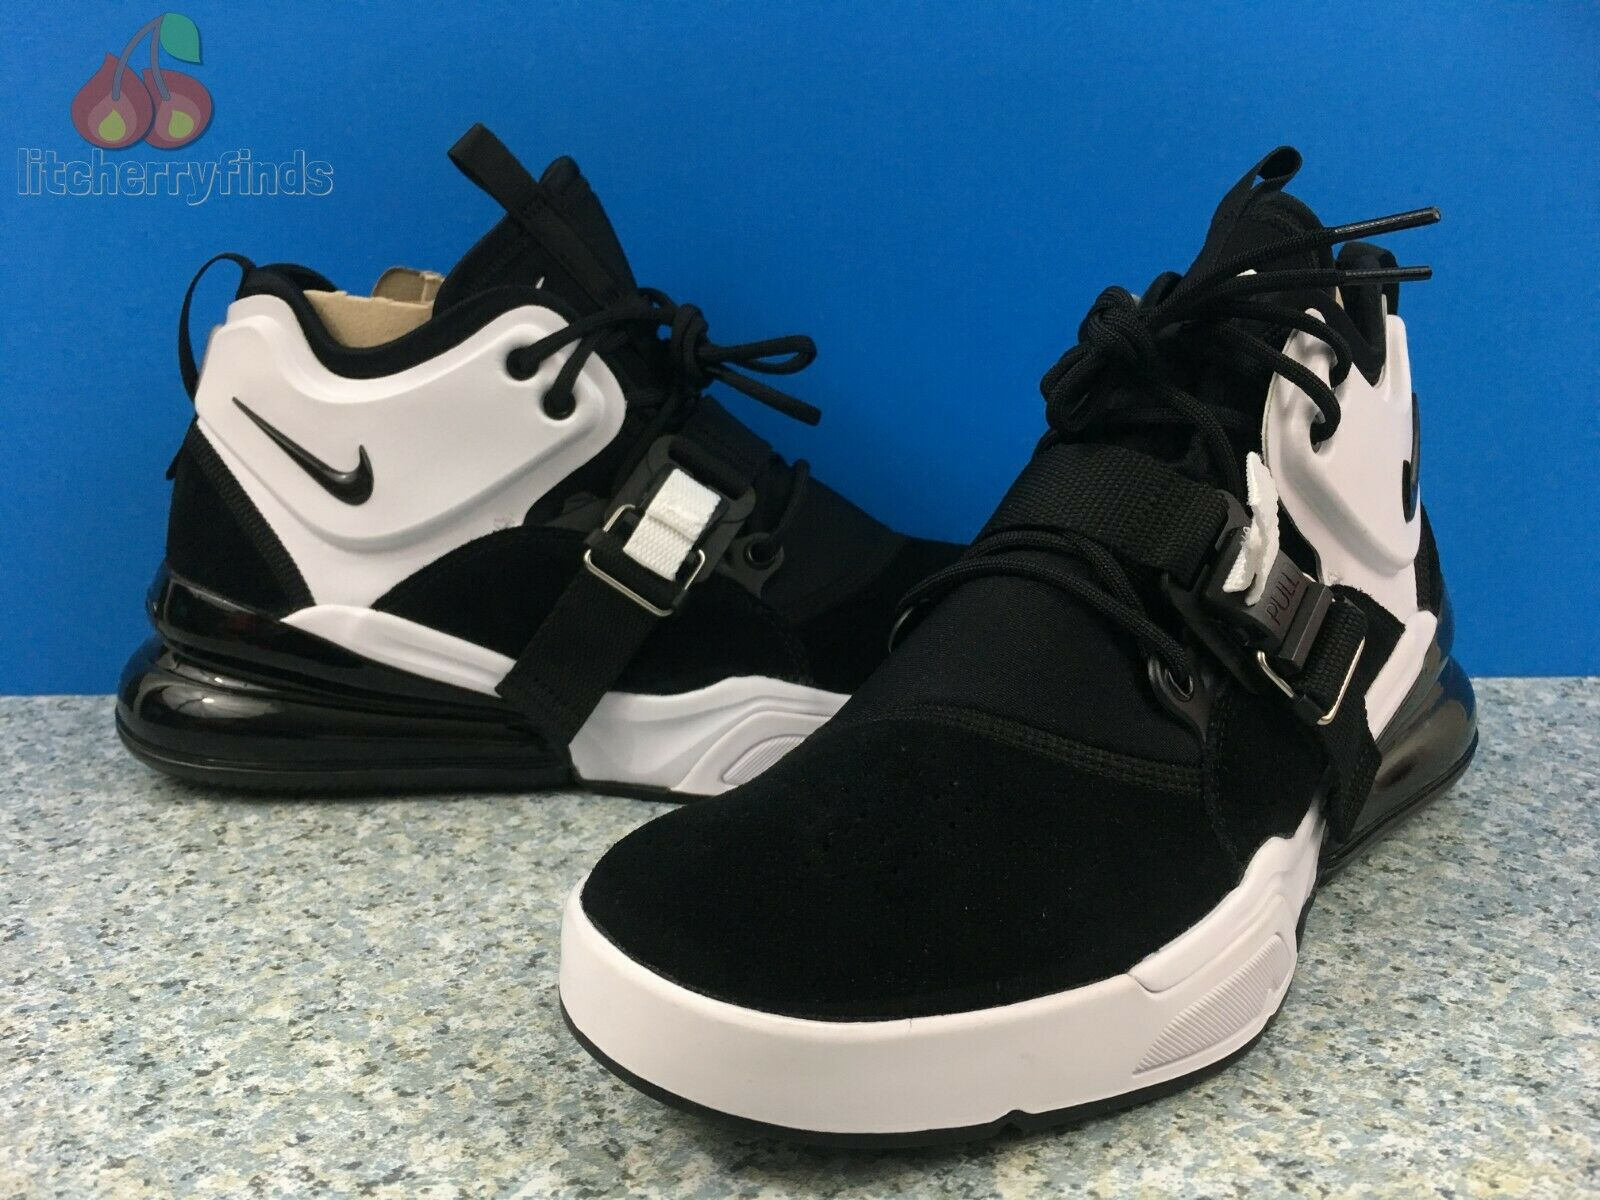 Nike Air Force 270 Mens Size 8.5 Black White Oreo Suede Off-Court Gym AH6772-006